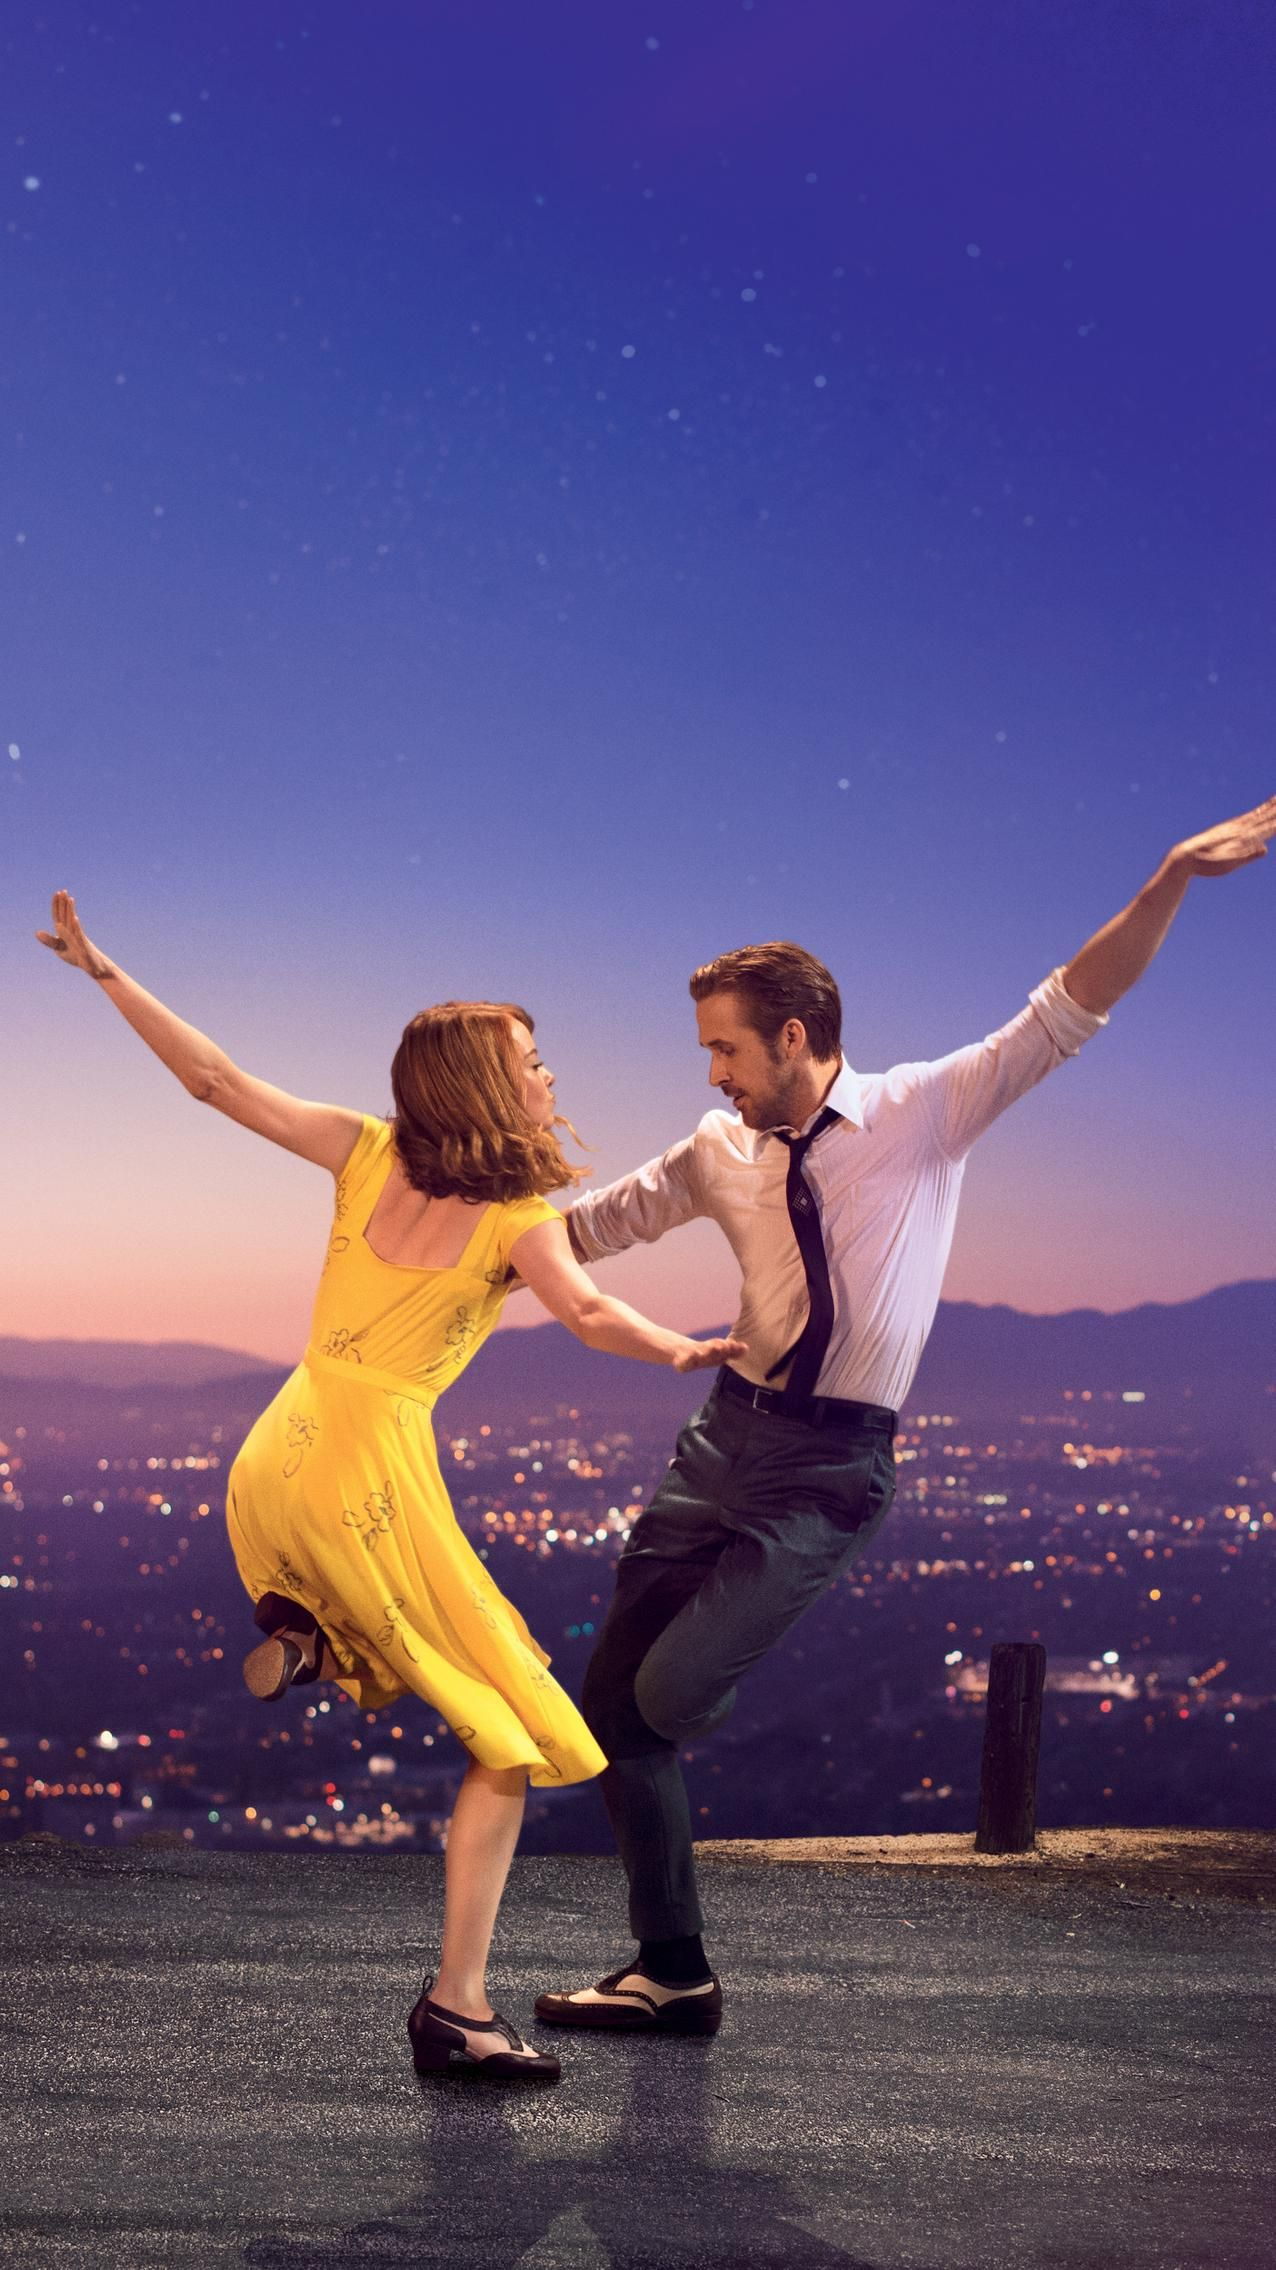 La La Land 2016 Phone Wallpaper Moviemania Romantic Movies La La Land Movie Wallpapers